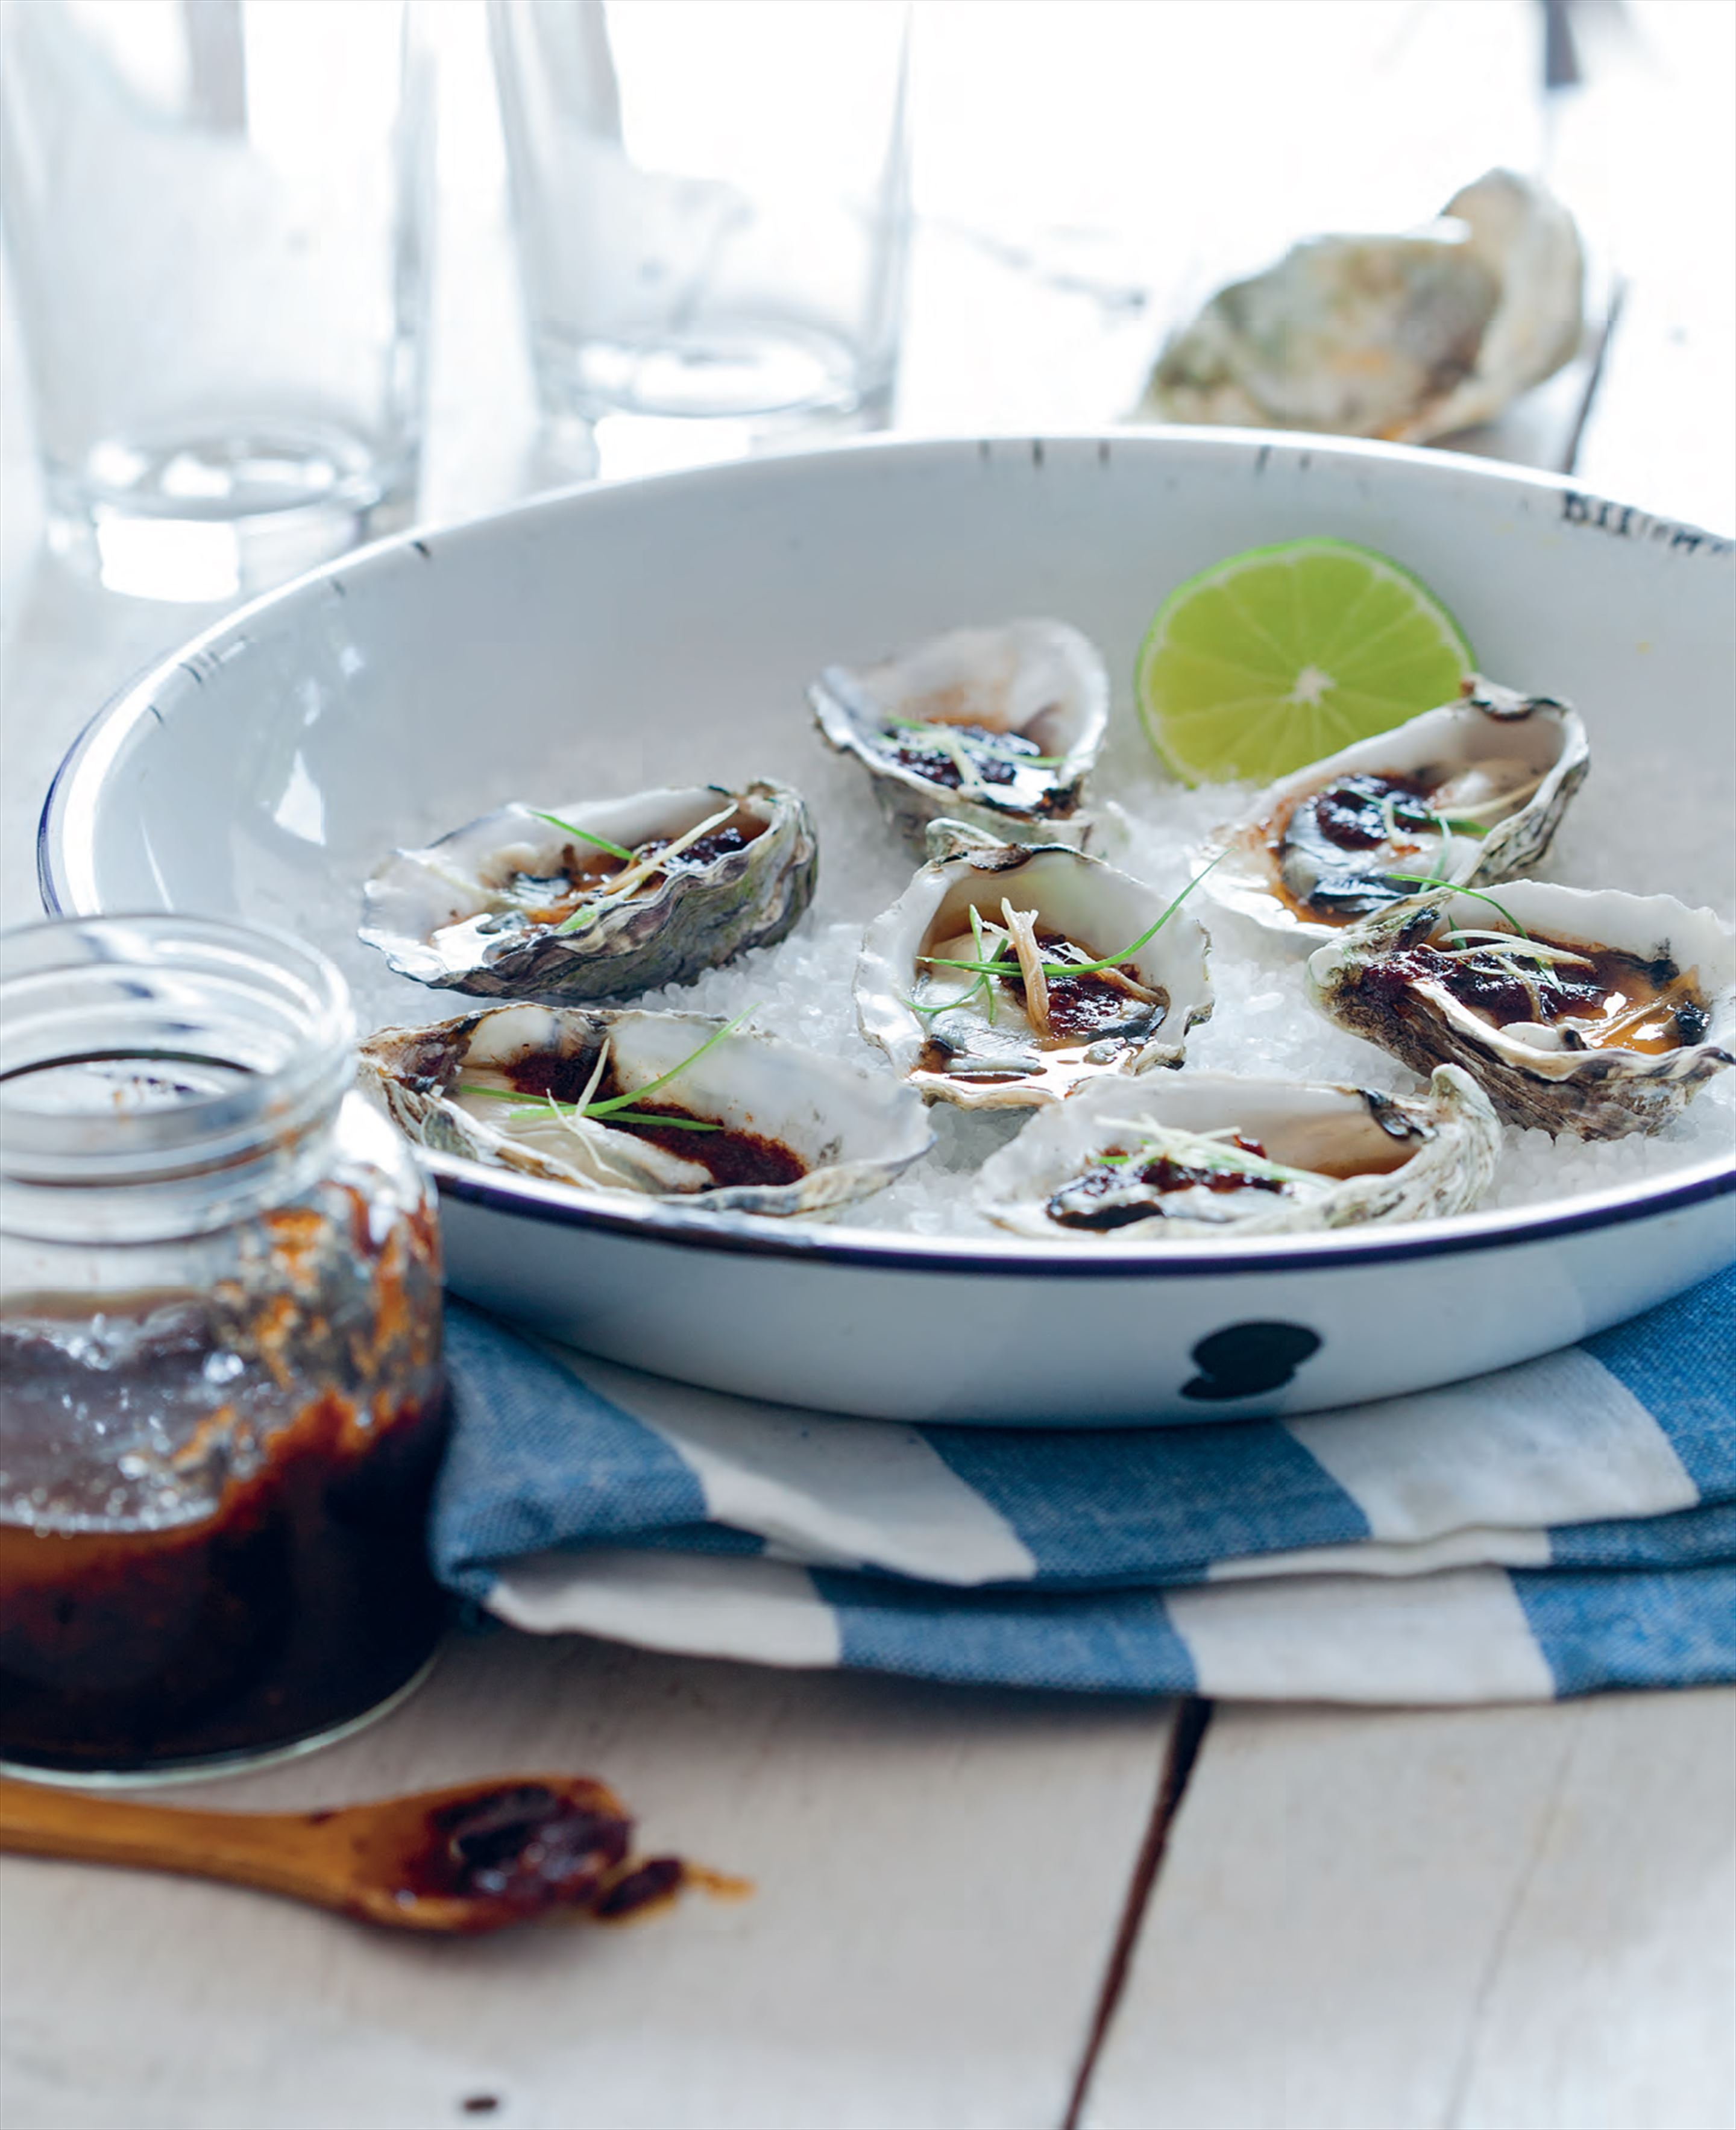 Barbecued oysters with XO sauce, ginger and shallot